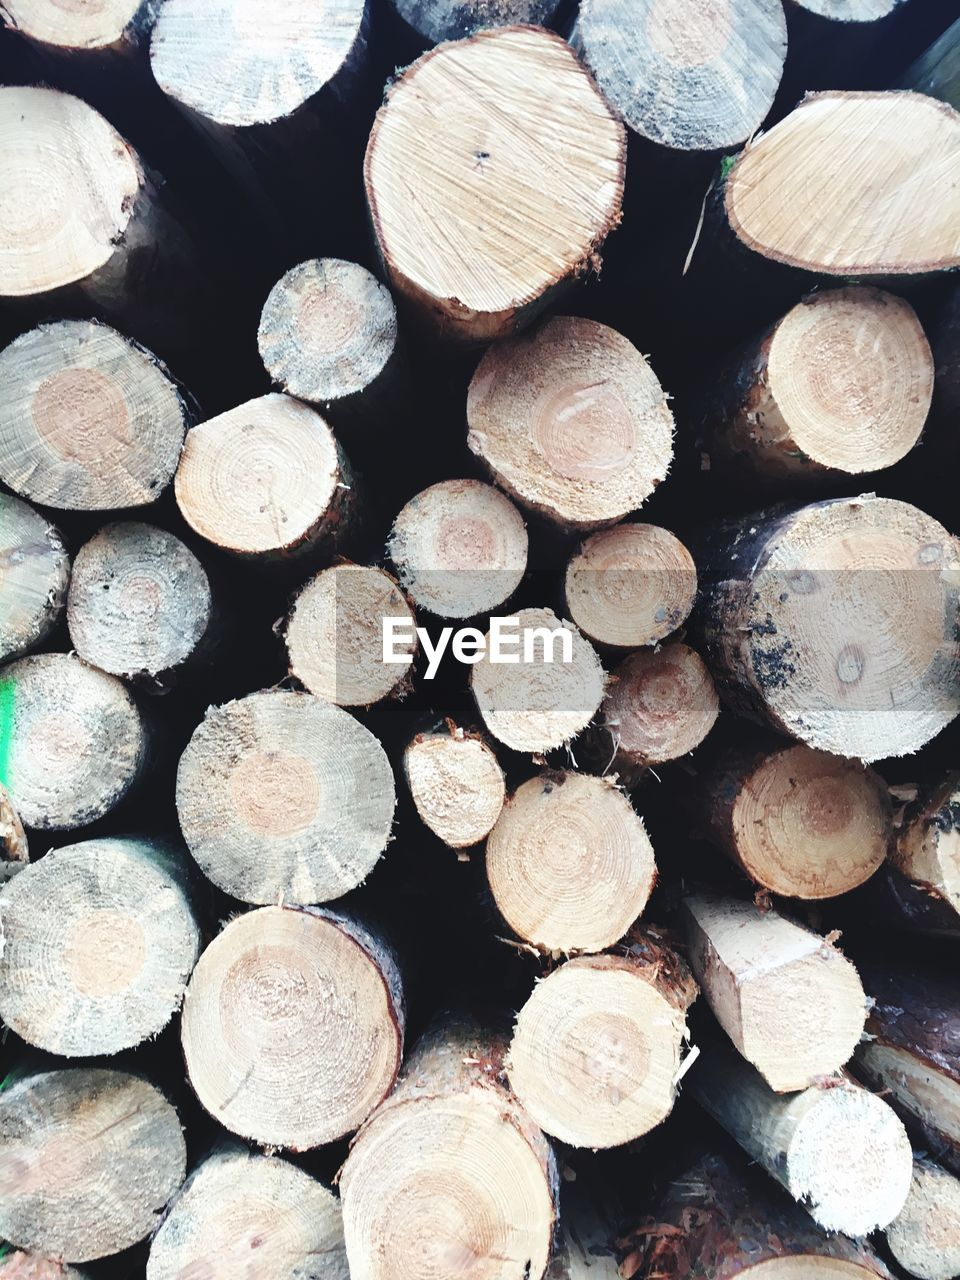 timber, log, wood, wood - material, firewood, lumber industry, forest, tree, large group of objects, full frame, backgrounds, stack, deforestation, abundance, woodpile, fuel and power generation, no people, fossil fuel, environmental issues, close-up, outdoors